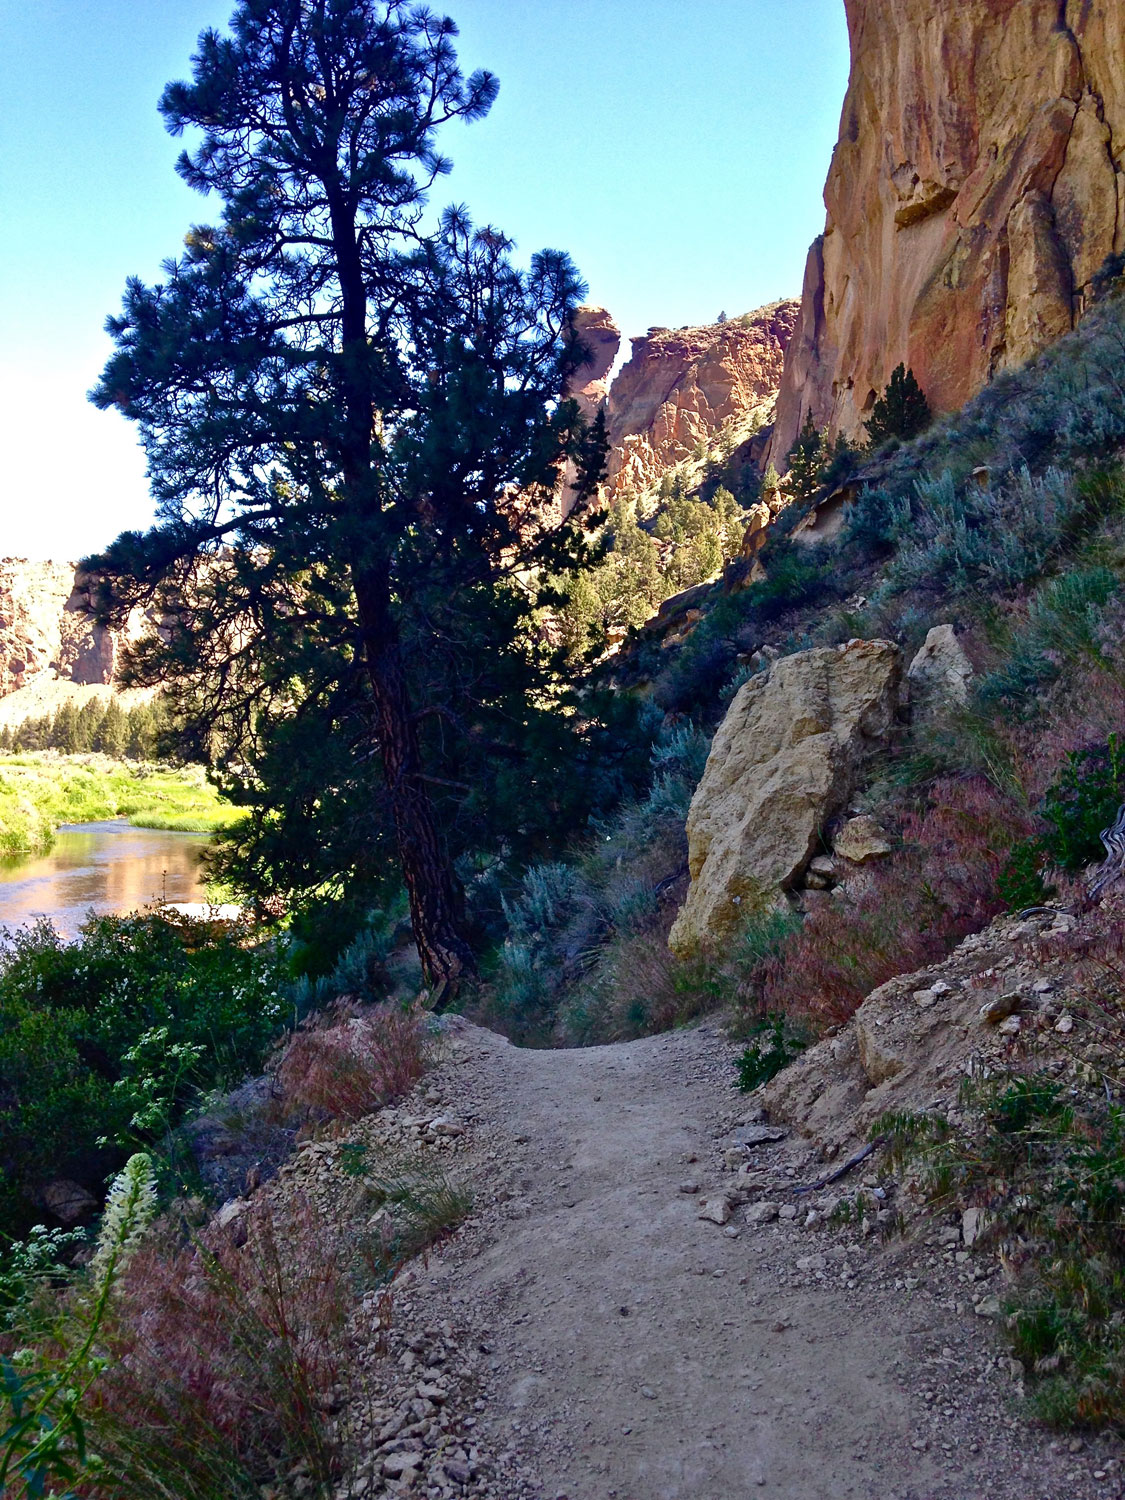 Undulating scree surfaces can be slippery on the River Trail at Smith Rock State Park.